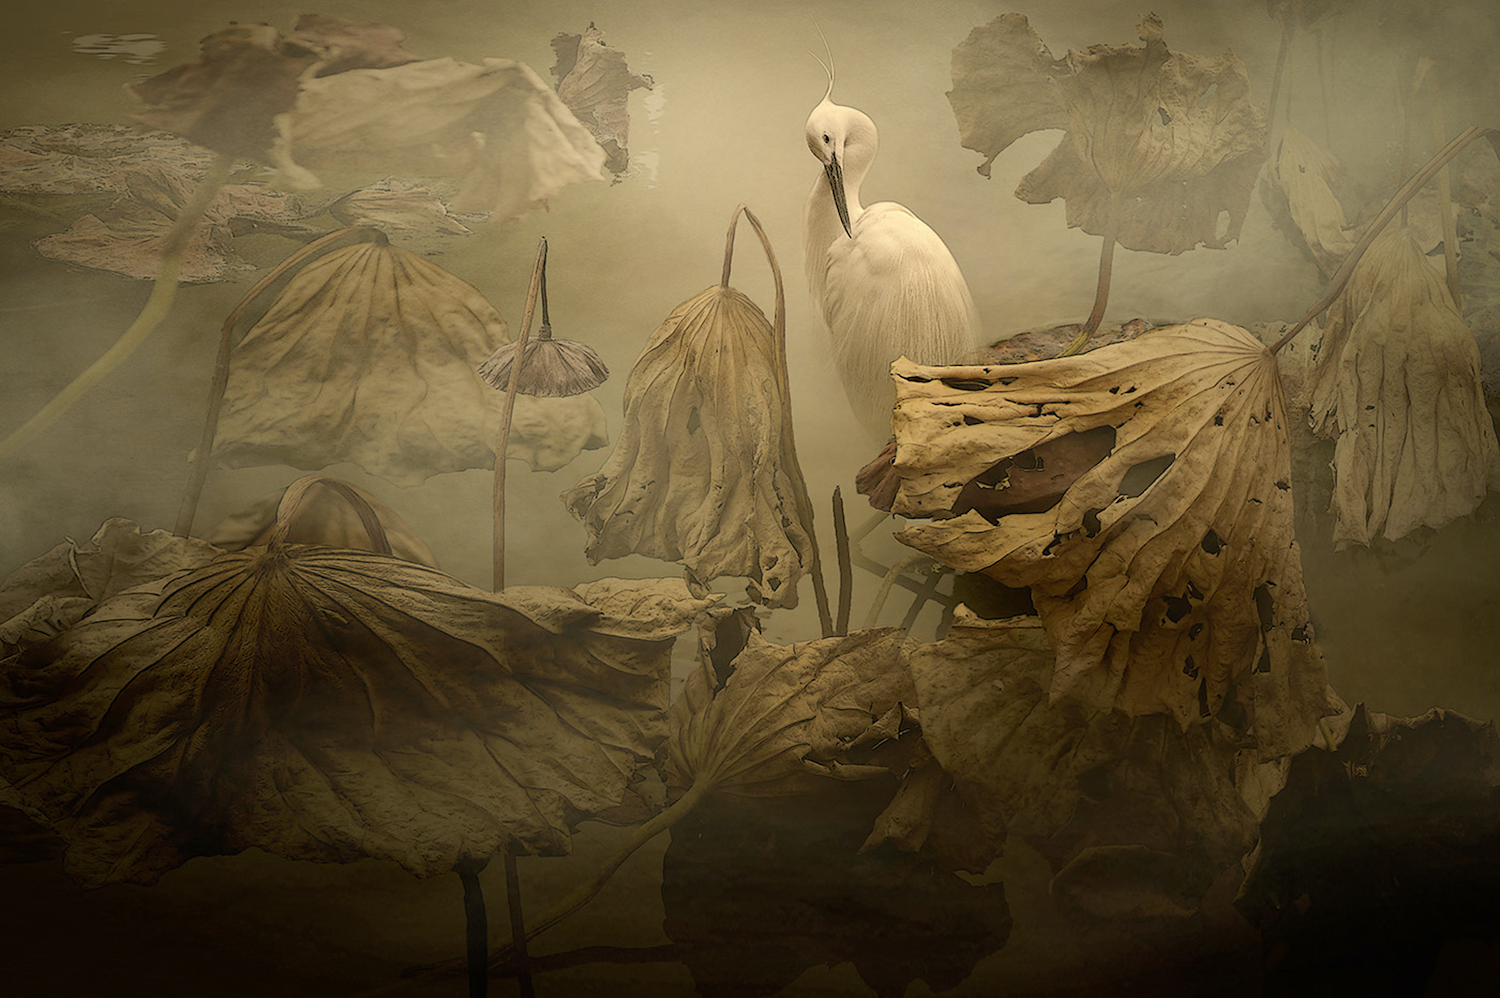 An egret standing among lotus leaves in different stages of life.